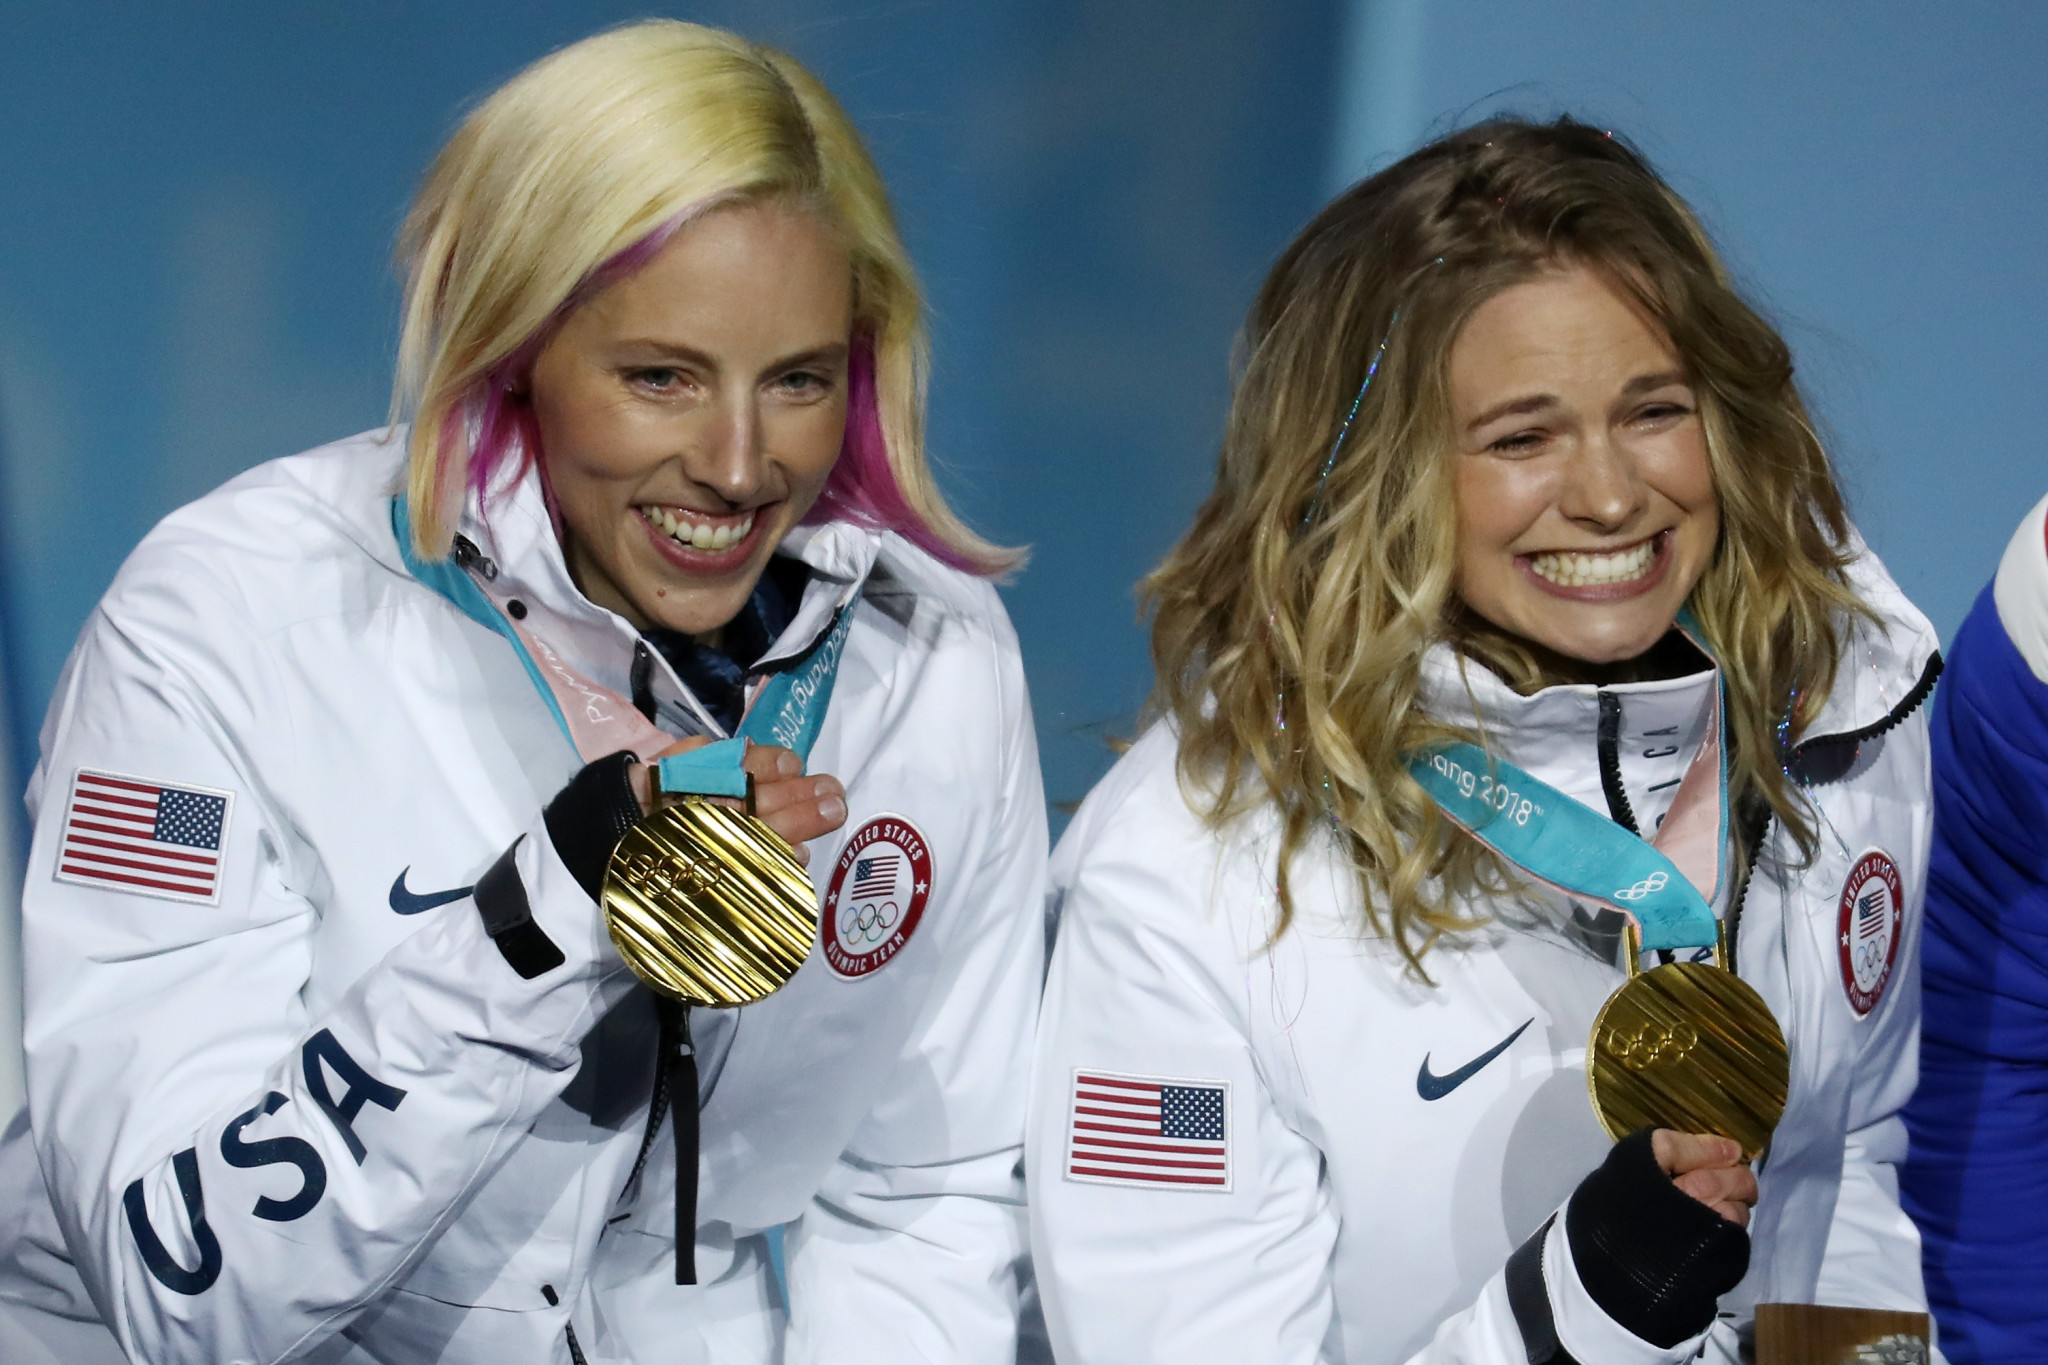 Kikkan Randall, left, was diagnosed with breast cancer soon after winning an Olympic gold medal at Pyeongchang 2018 but has now recovered following treatment ©Getty Images